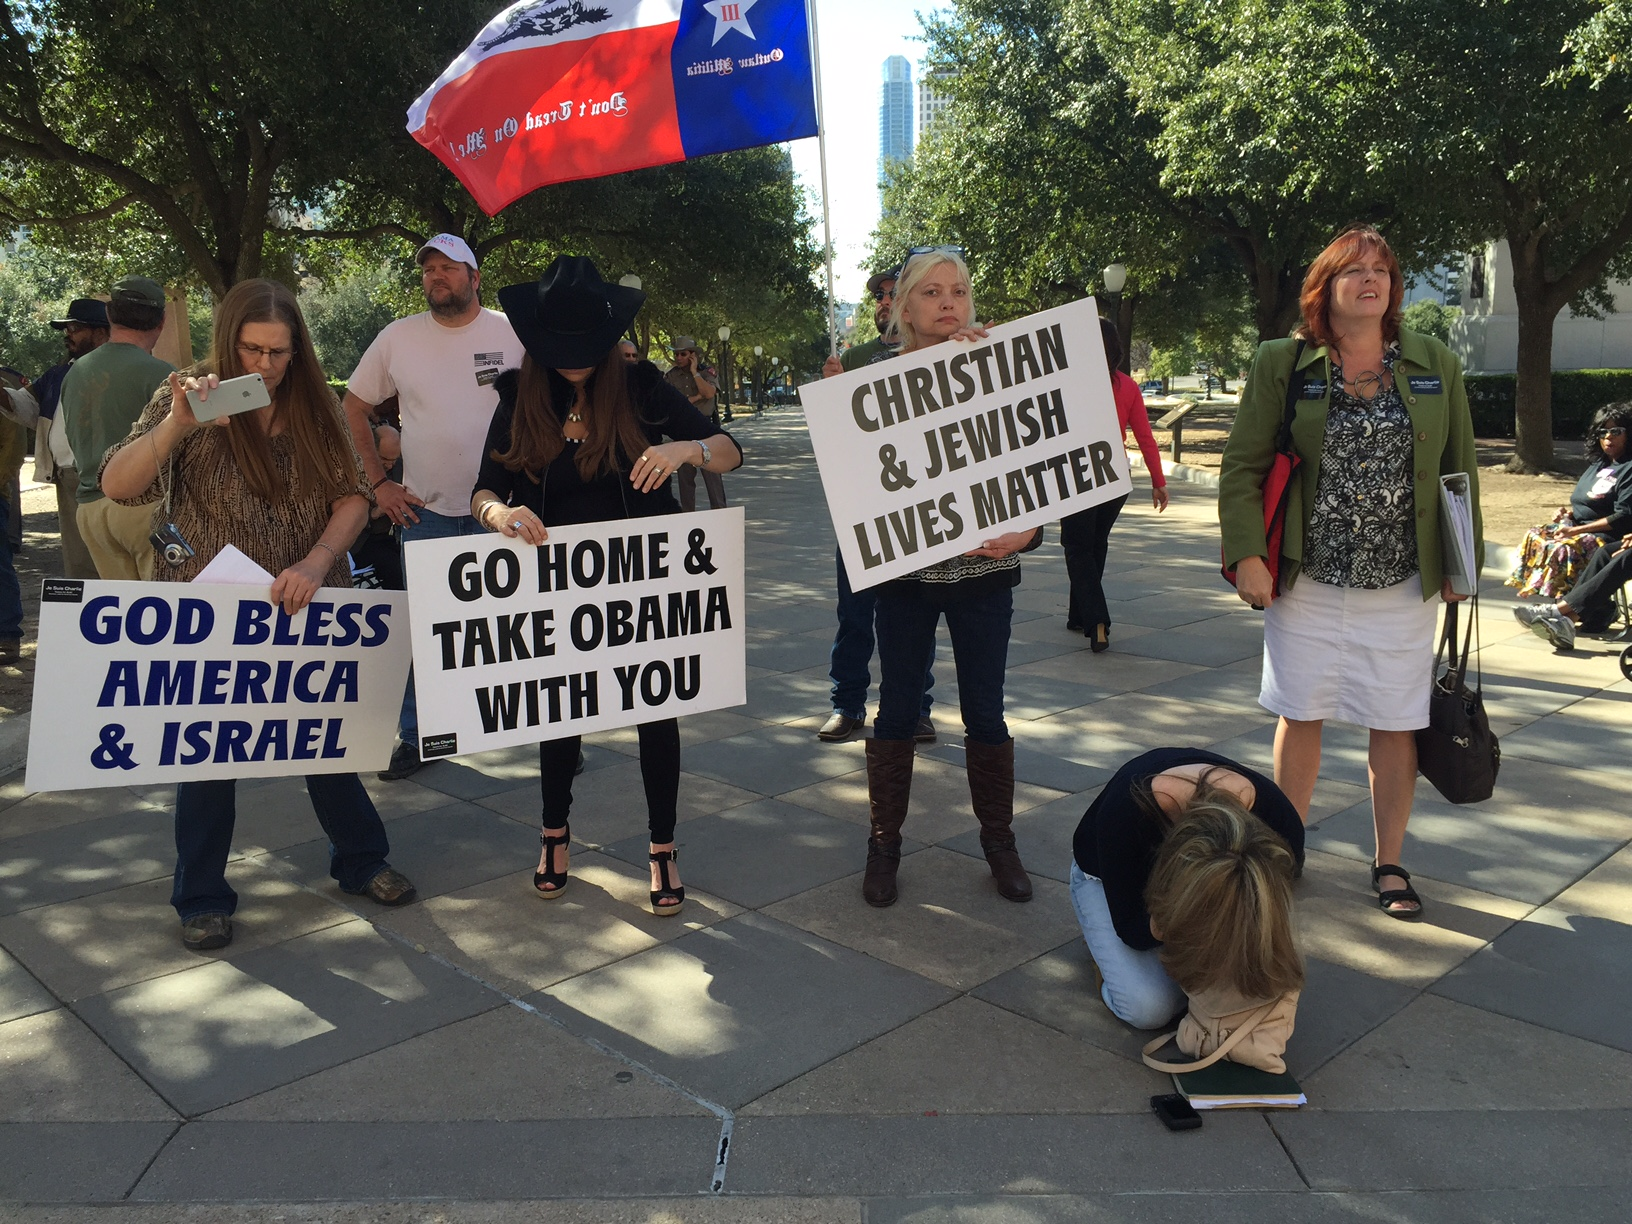 Dallas Morning News Op-Ed: Ugly anti-Muslim taunts by Texas lawmaker, protesters are embarrassments to Texans